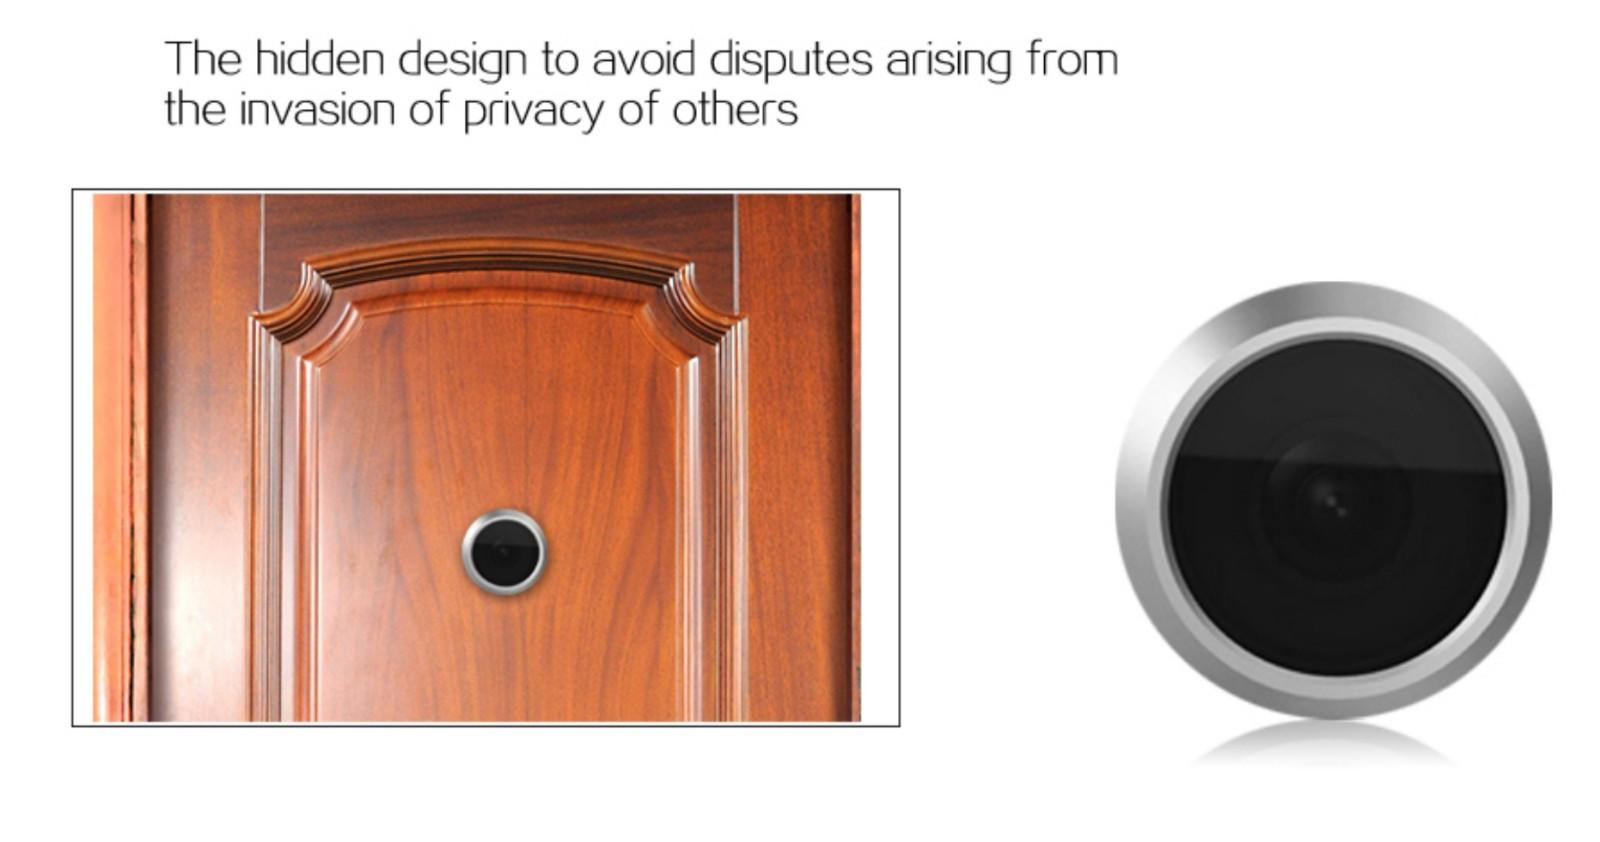 Eversunny smoothly electronic door viewer large wide-angle lens